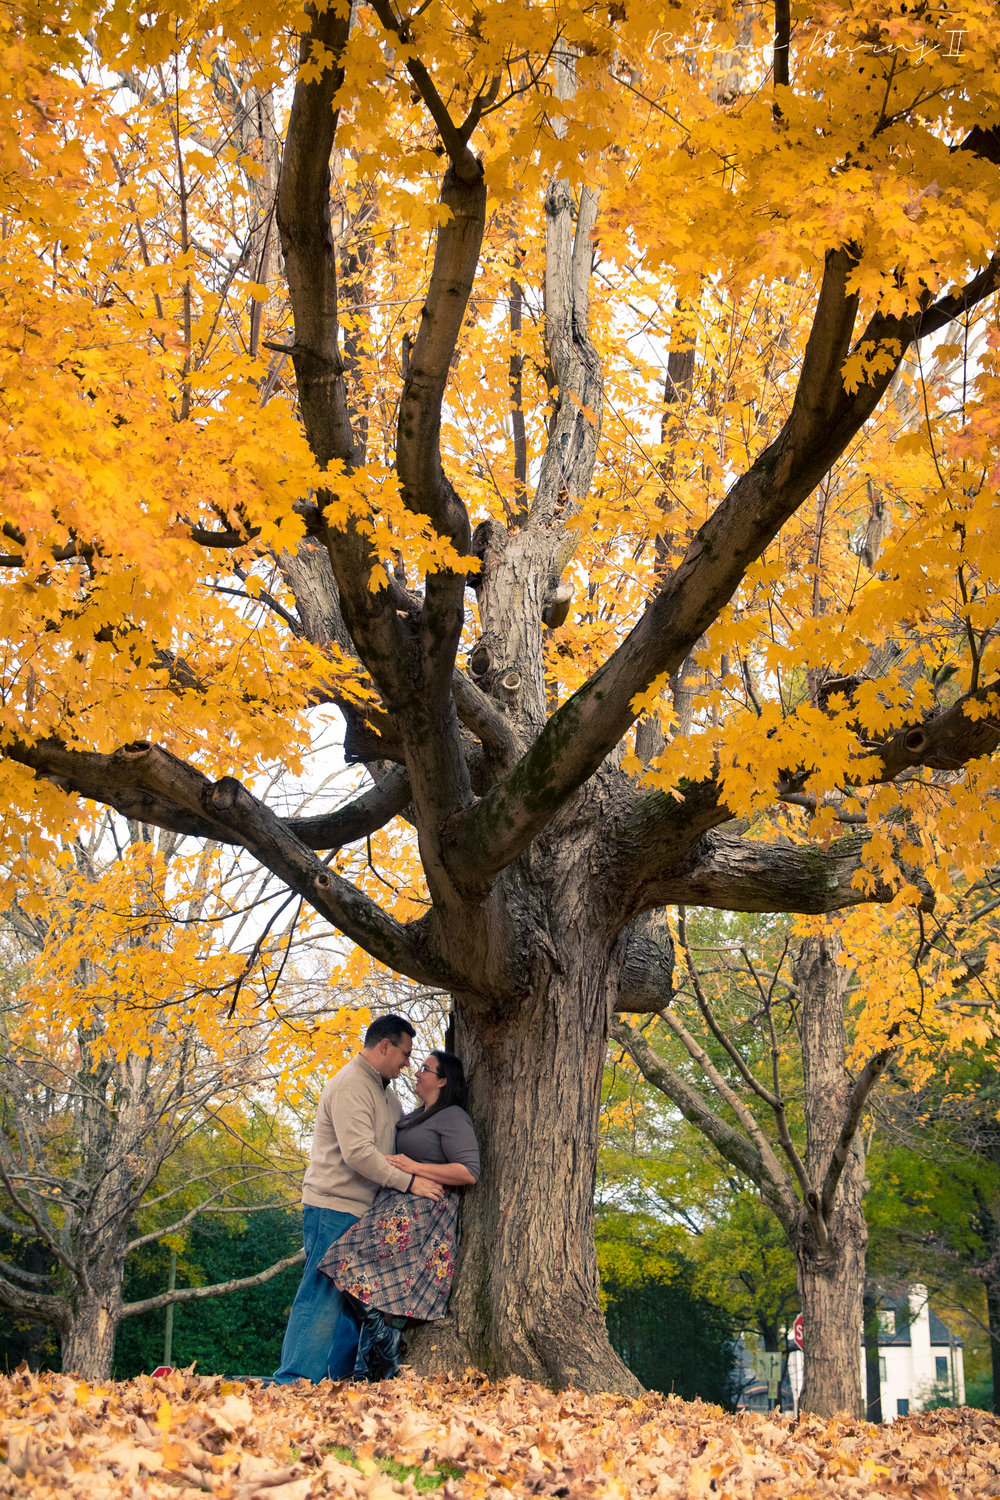 4. From the same engagement session as #4 above, for Crystal and Joseph.